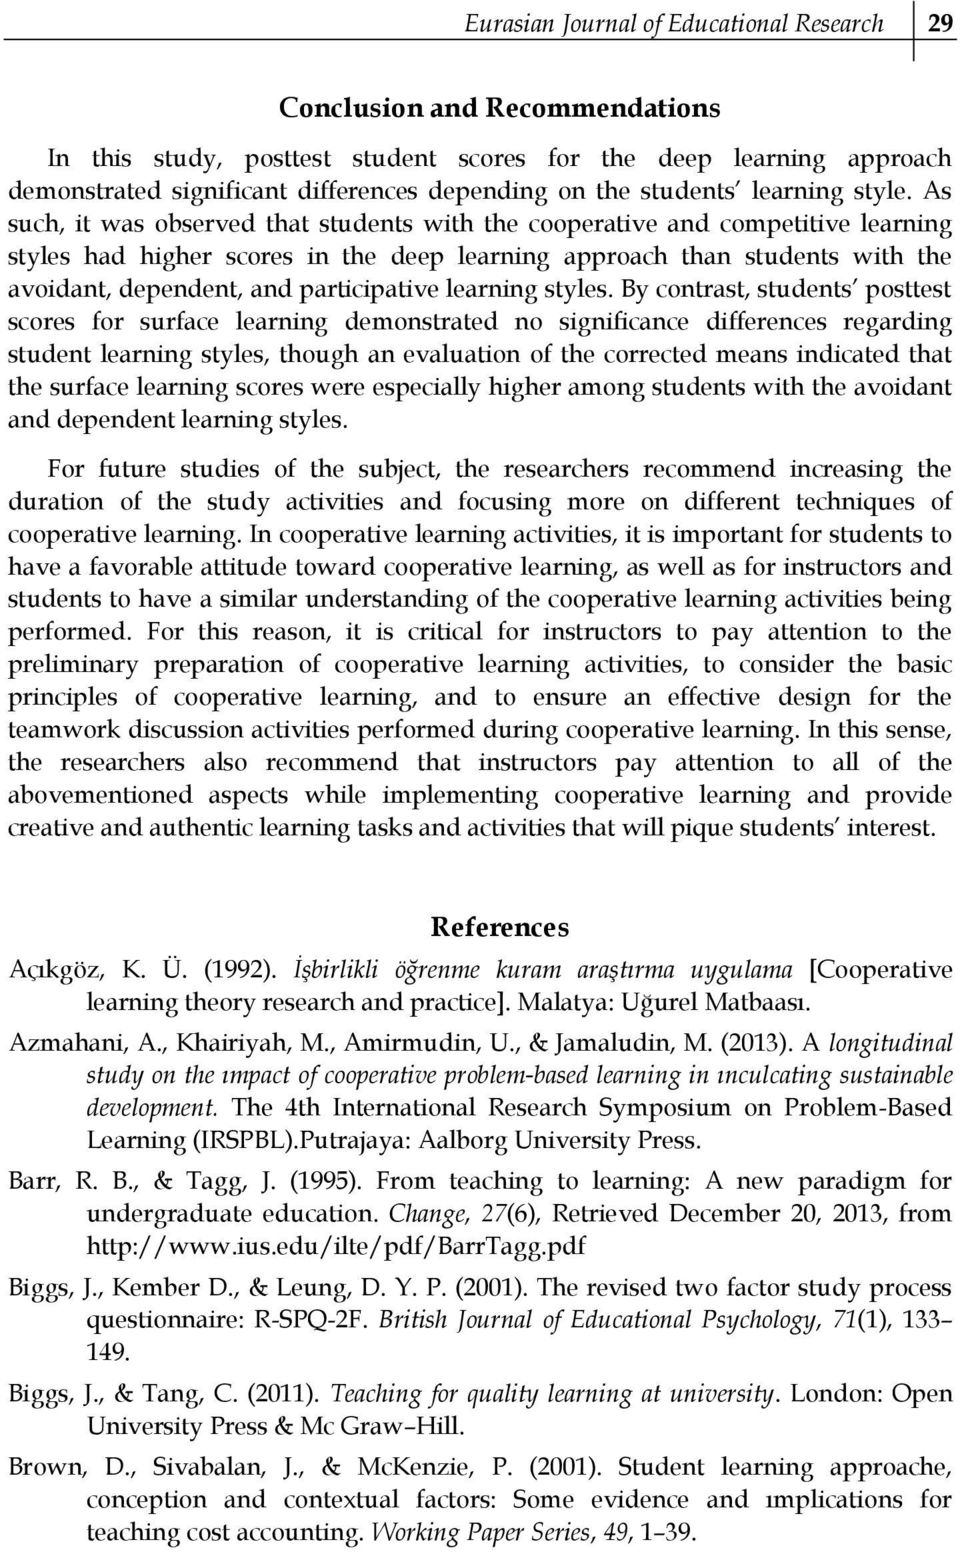 As such, it was observed that students with the cooperative and competitive learning styles had higher scores in the deep learning approach than students with the avoidant, dependent, and